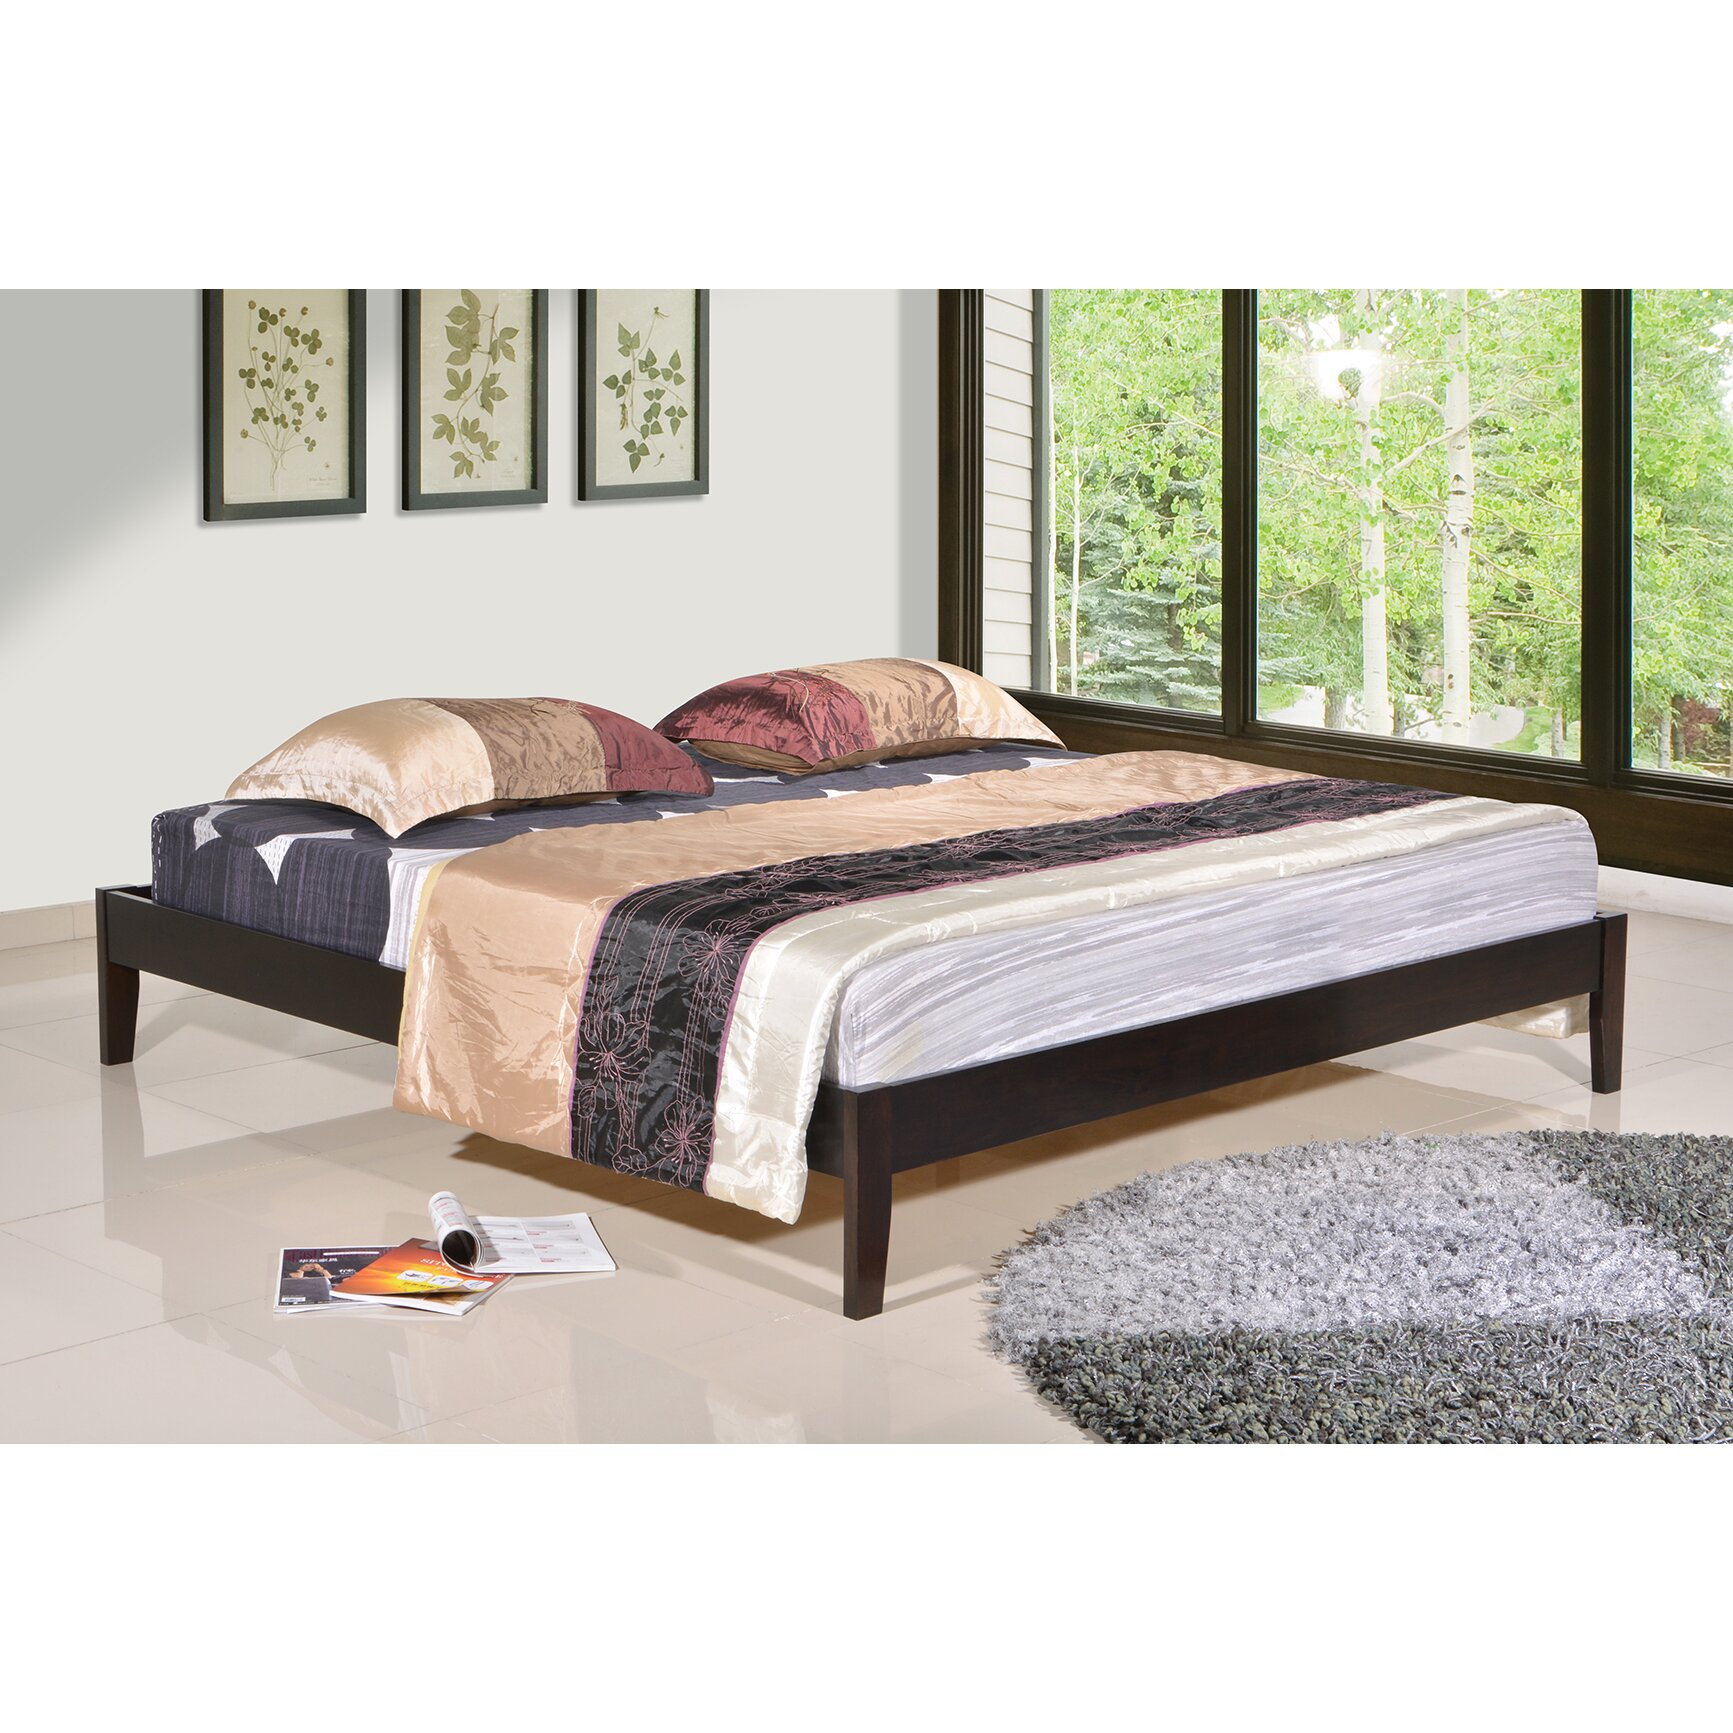 superb wooden platform bed frames